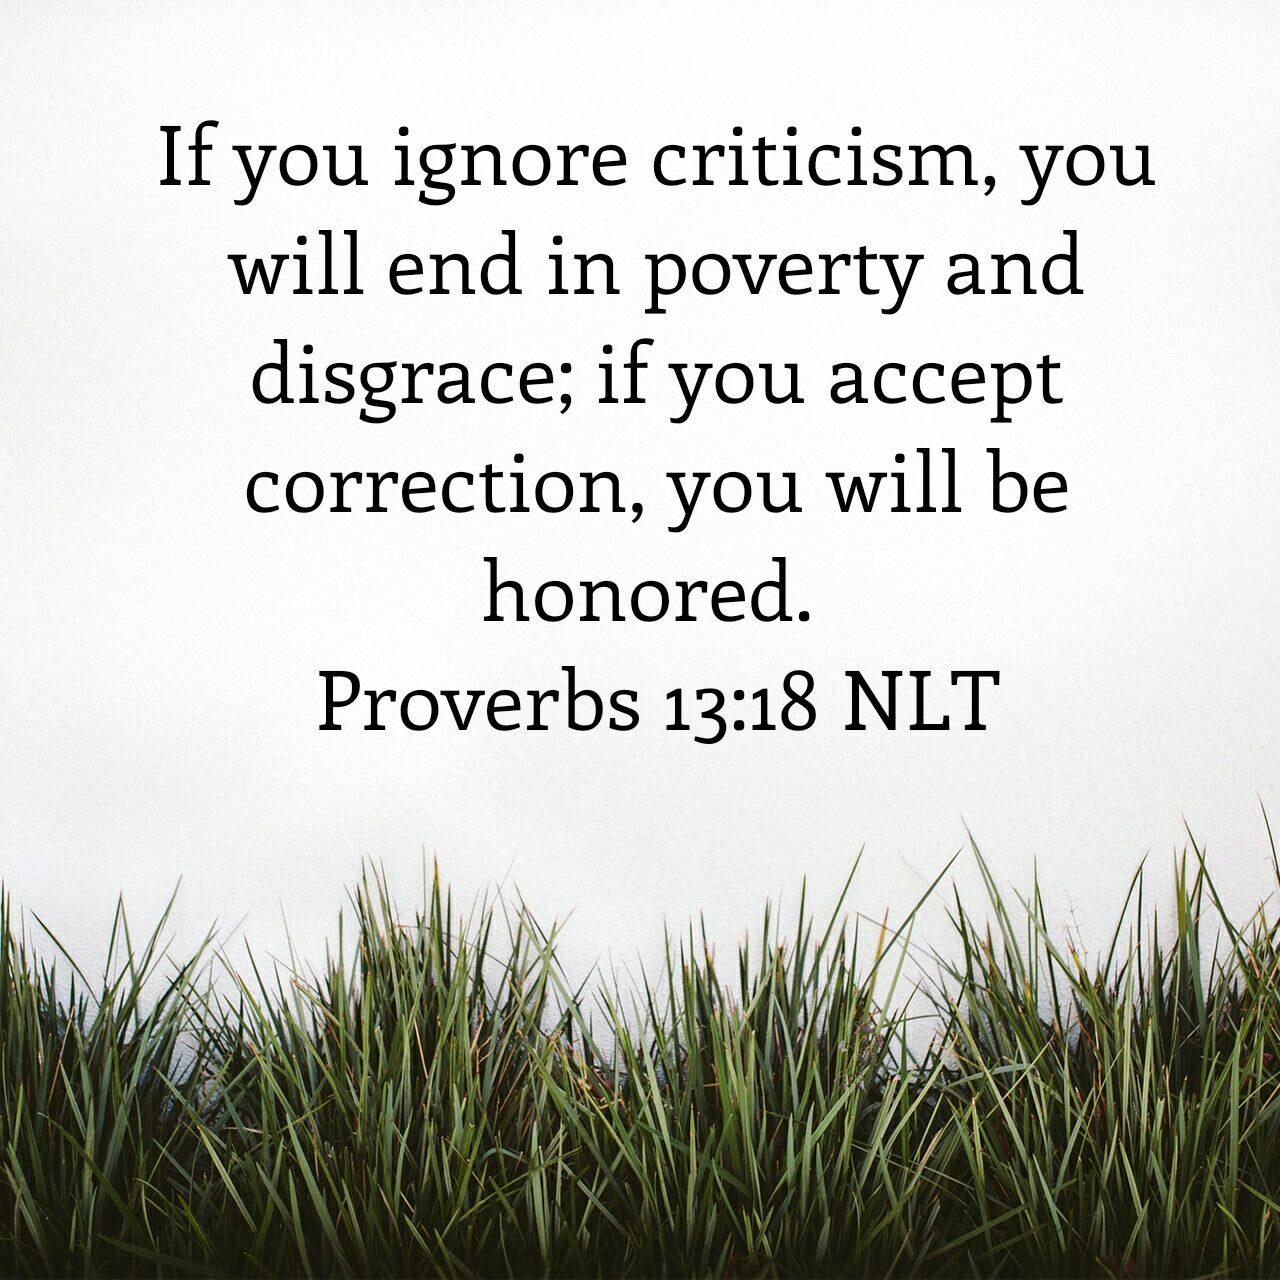 I Love The Book Of Proverbs The Wisdom Is Timeless Proverbs Daily Bible Study Bible Apps